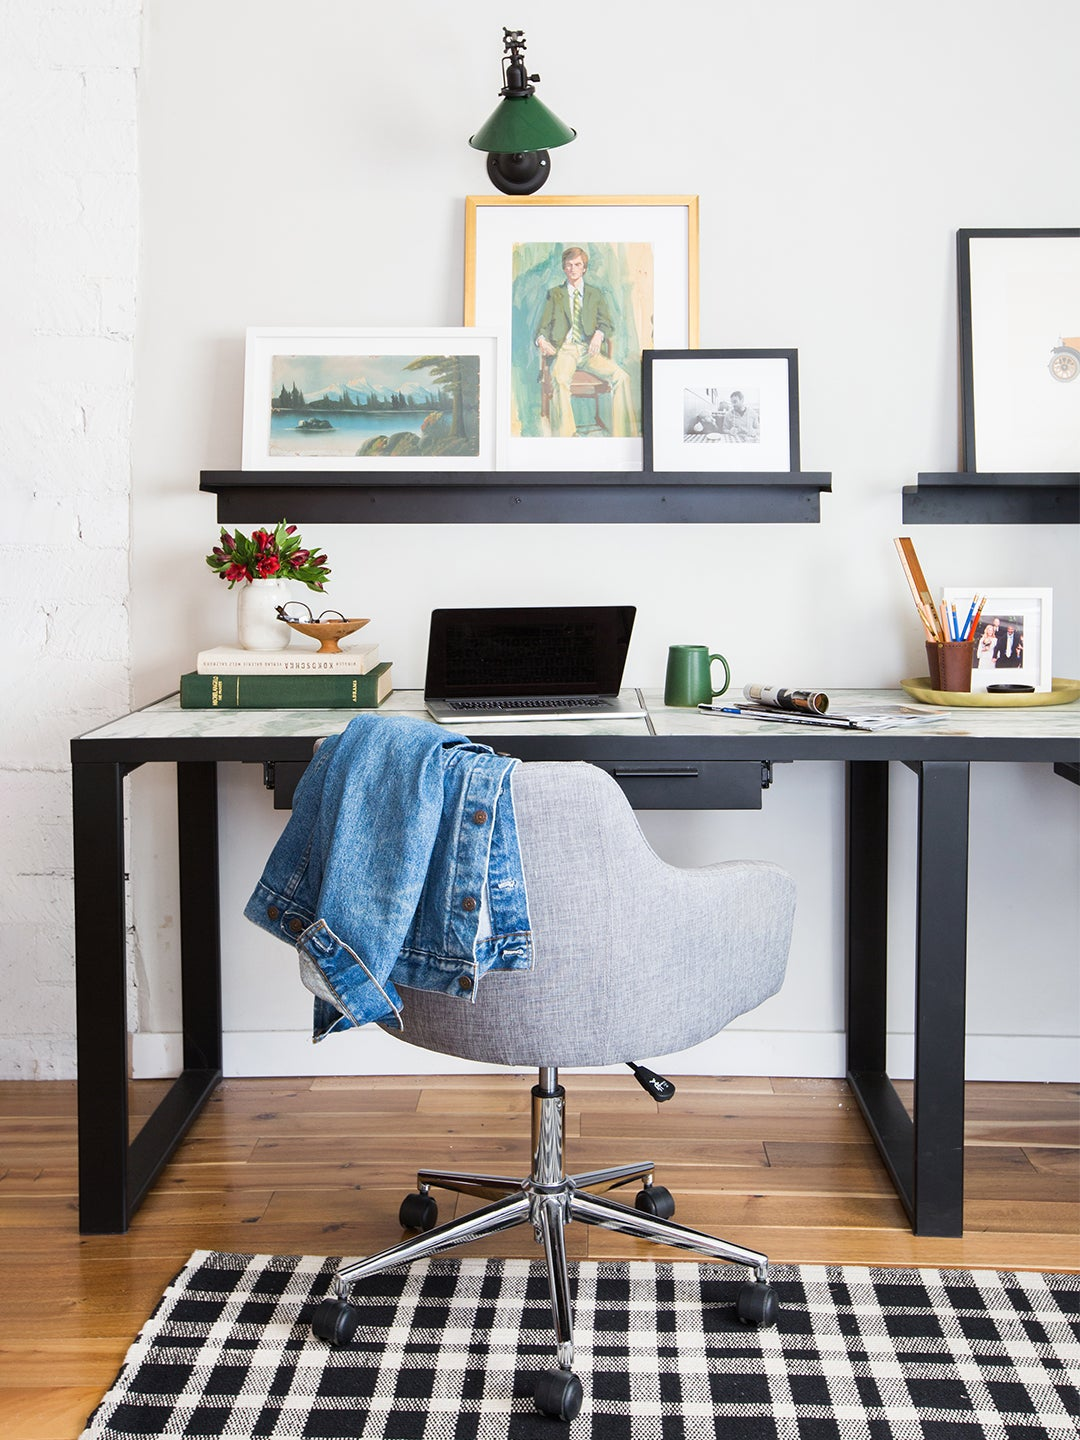 The Cure to WFH Fatigue Is a Home Office Revamp